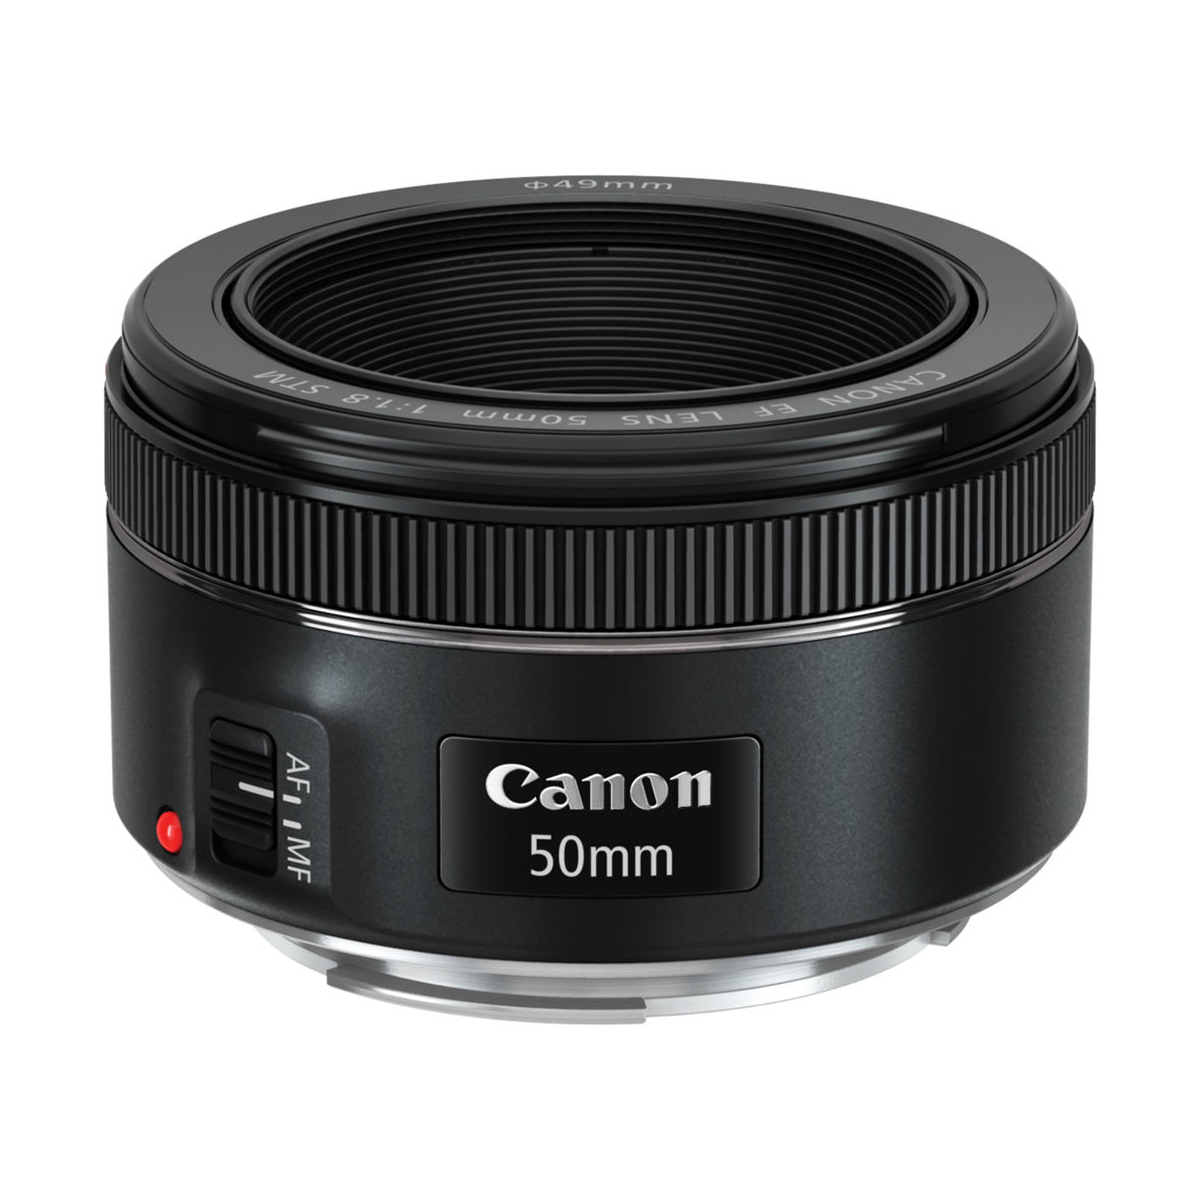 Image of Canon EF 50mm f/1.8 STM Lenses